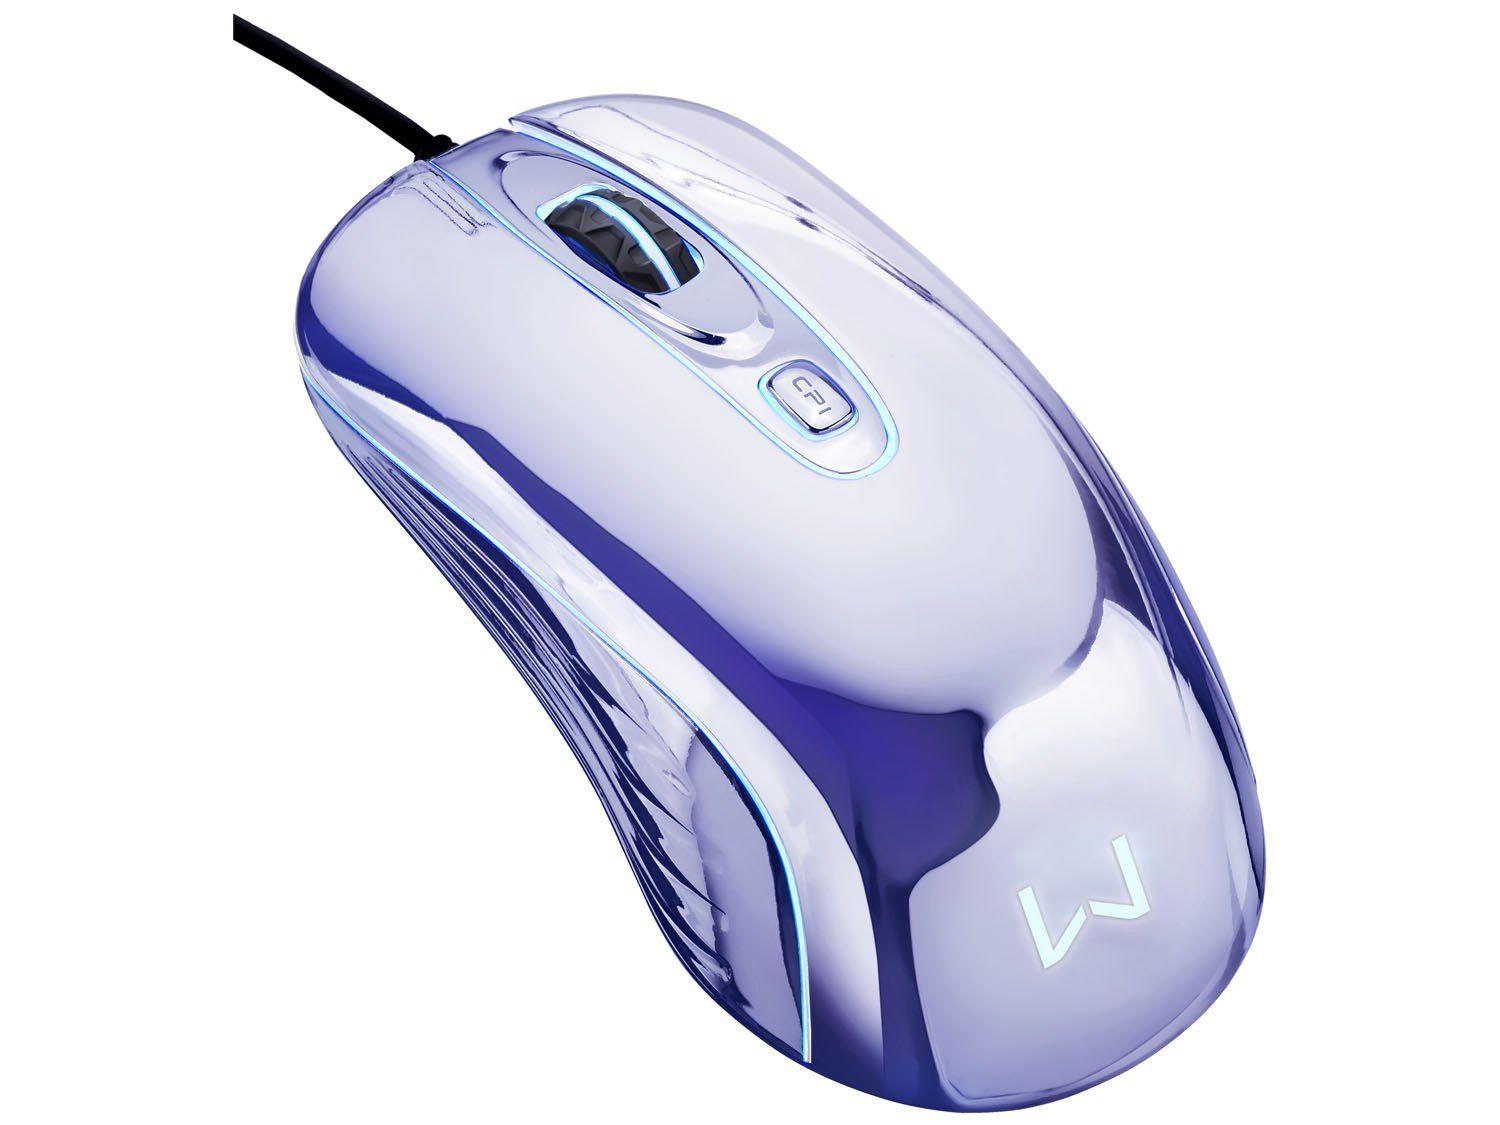 Foto 9 - Mouse Óptico 1600dpi USB - Multilaser Gamer Chrome Warrior M0228